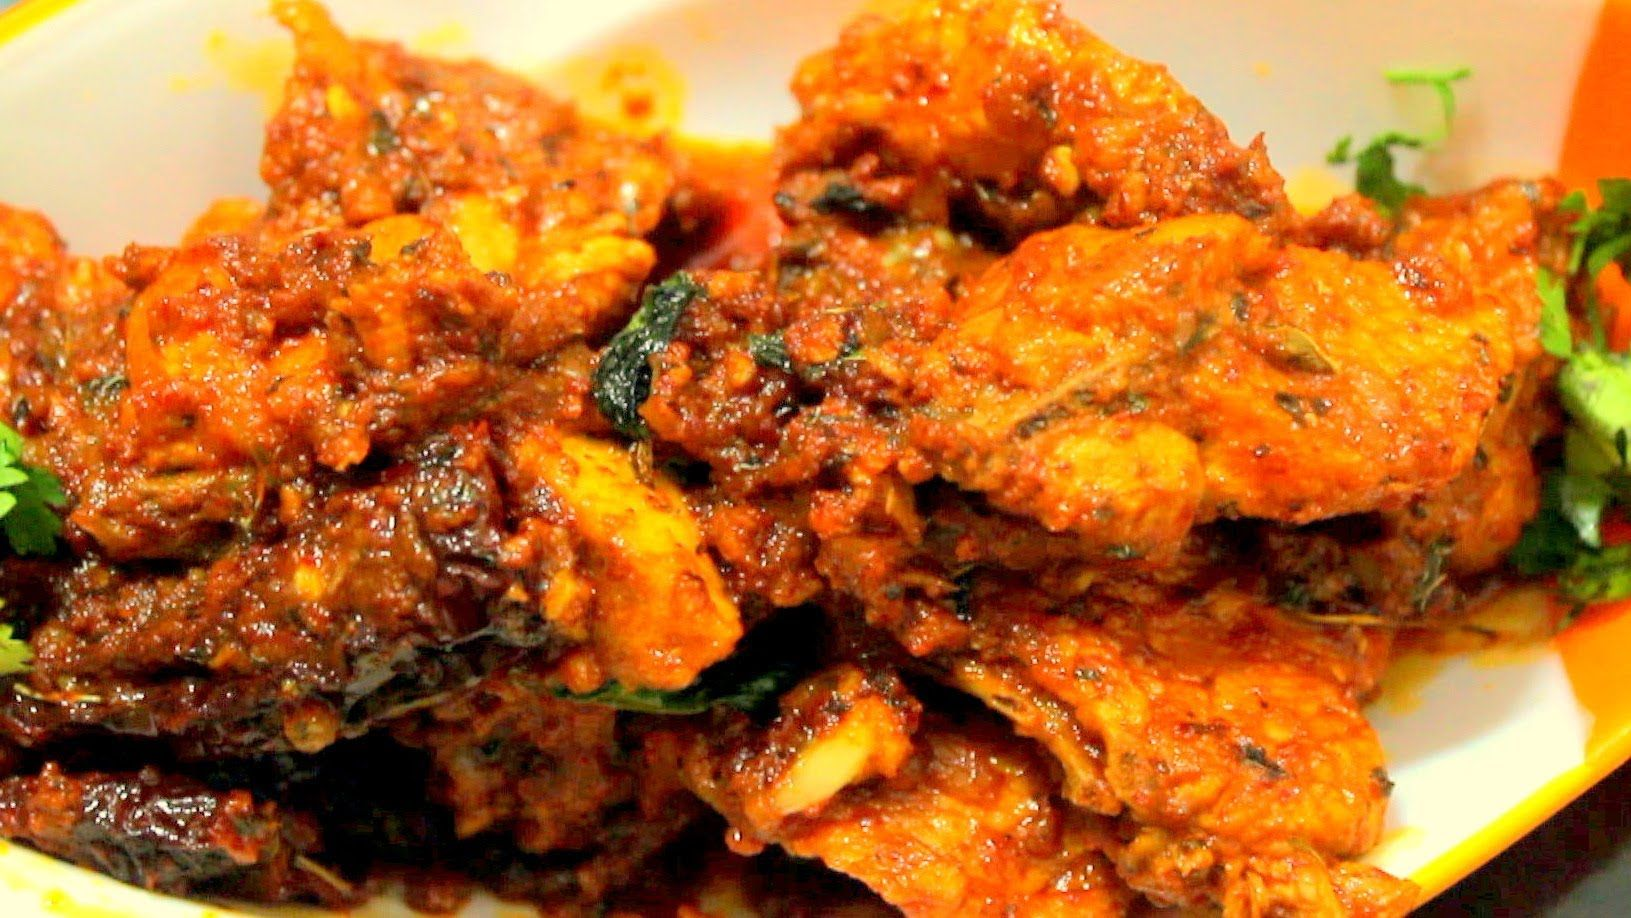 Kashmiri lasooni chicken recipe easy cook with food junction kashmiri lasooni chicken recipe easy cook with food junction forumfinder Gallery